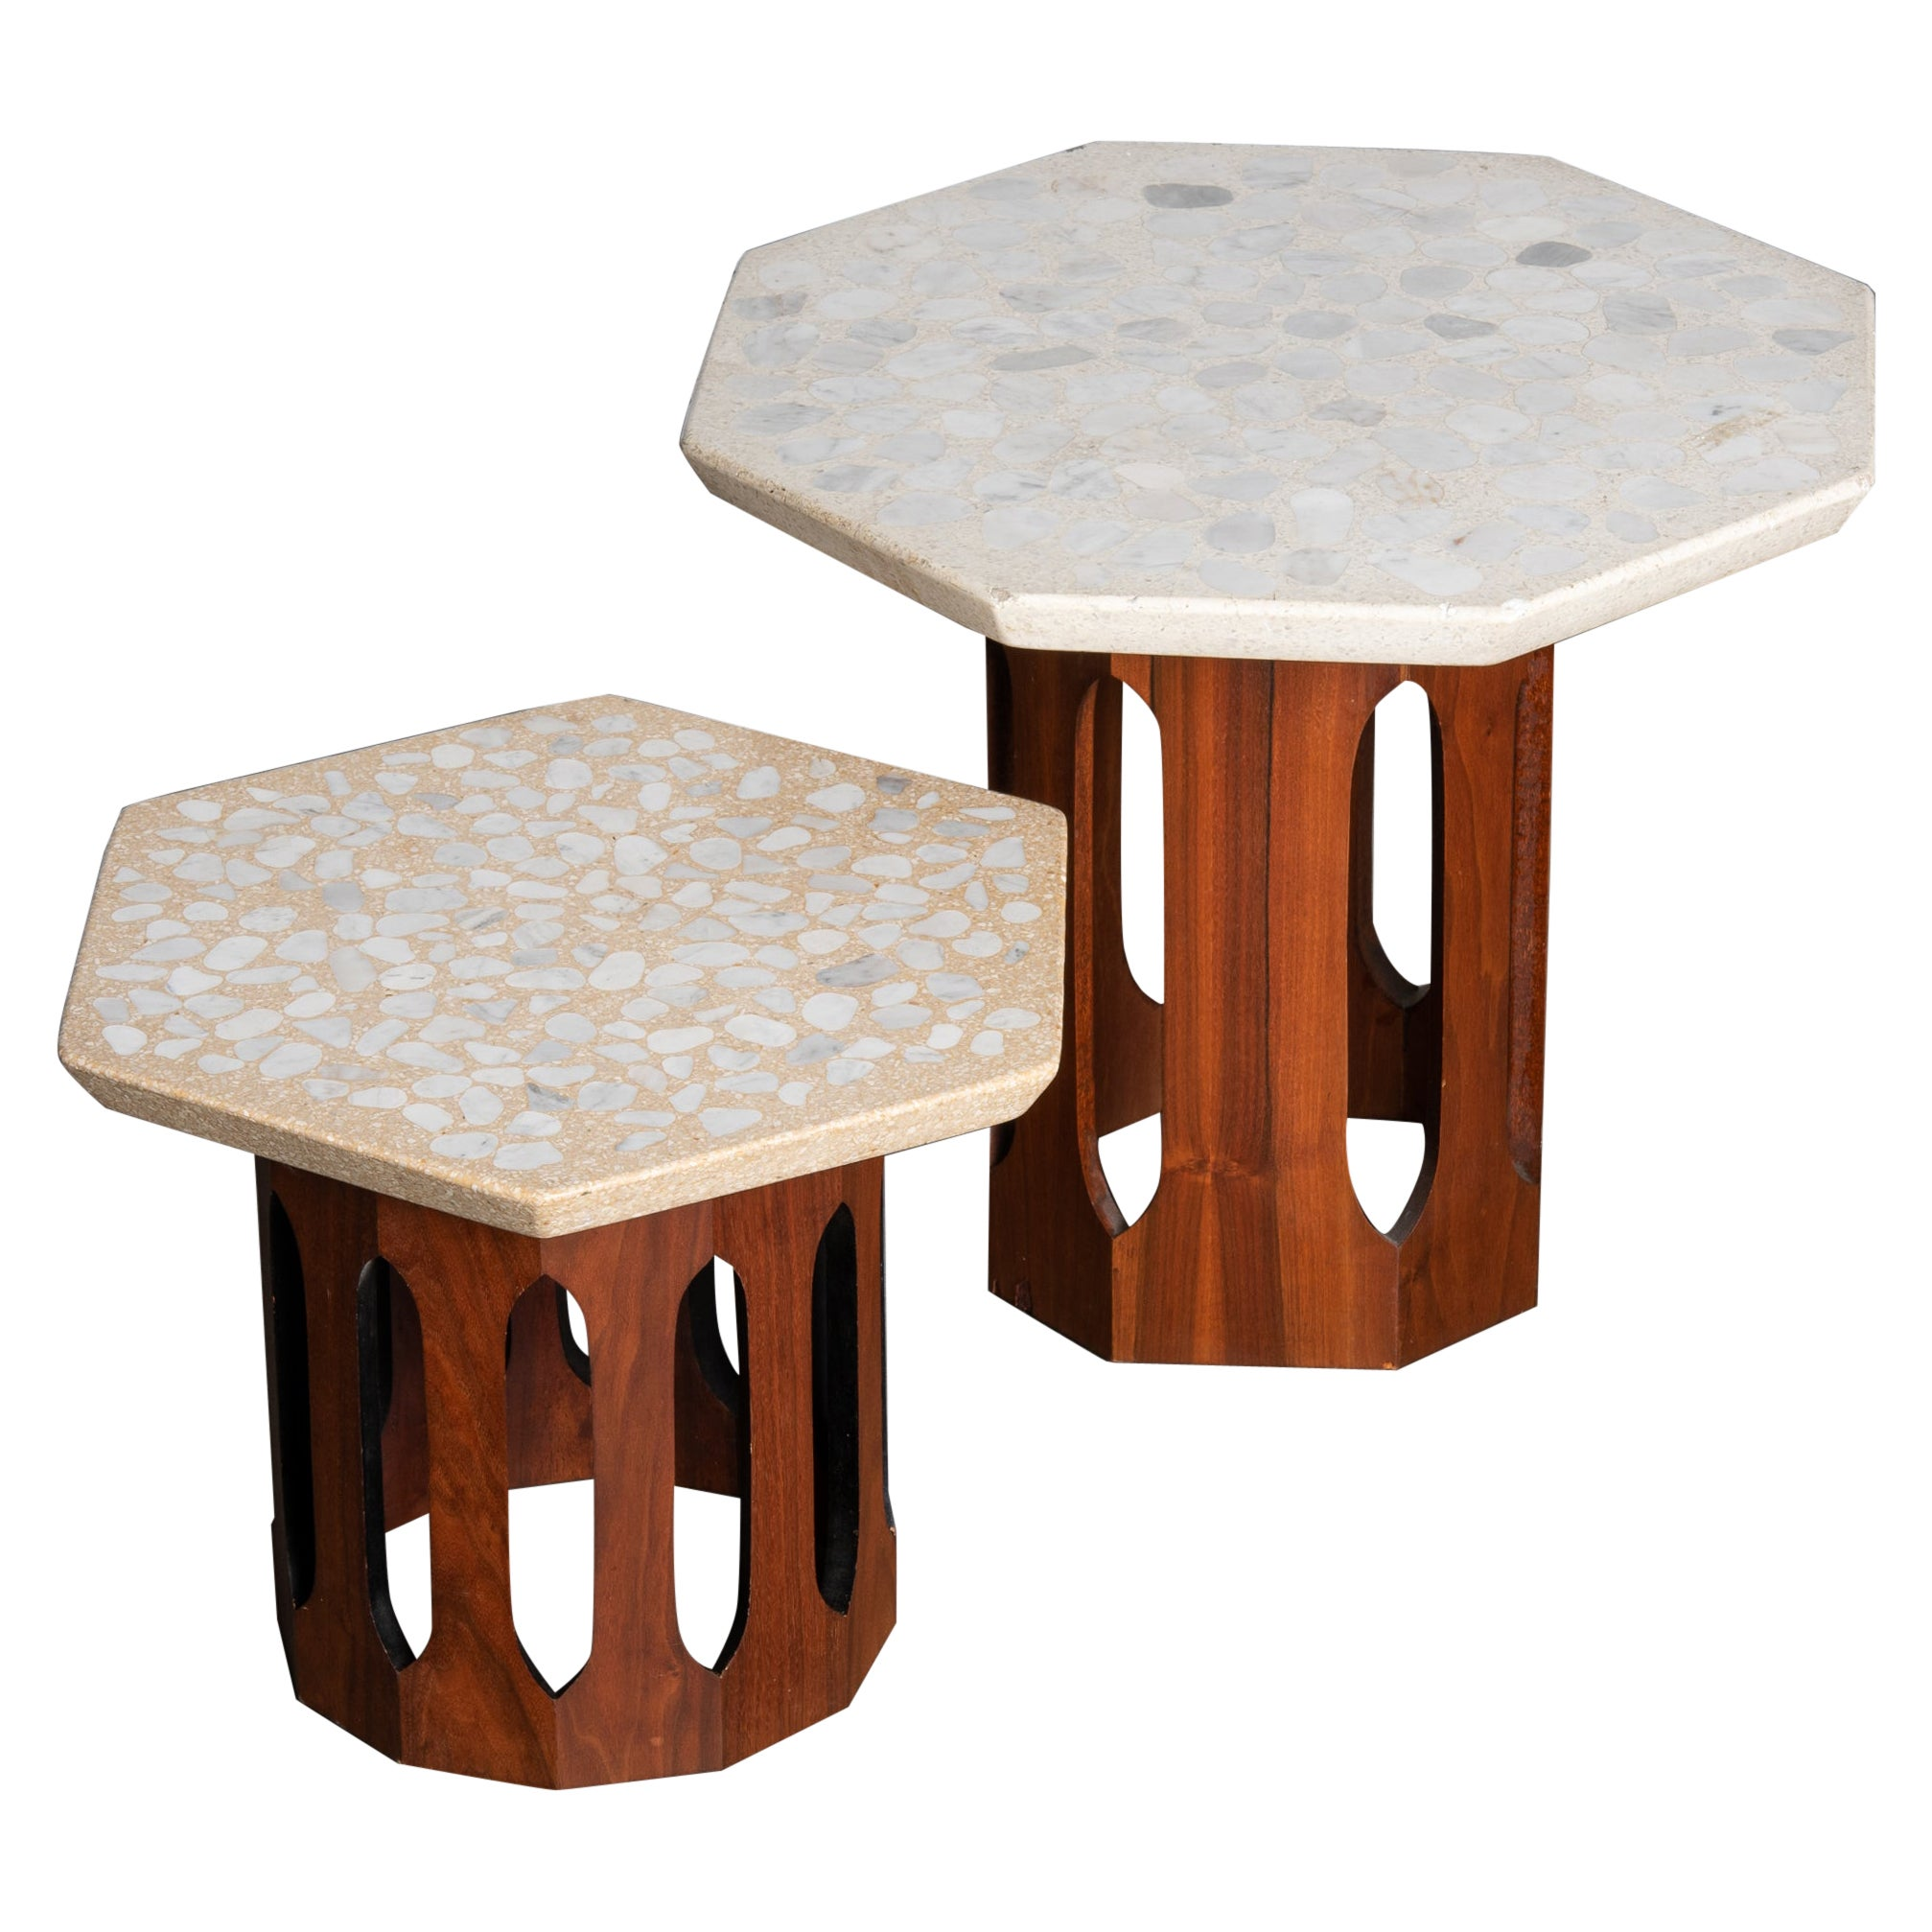 Terrazzo and Walnut Mid-Century Modern Harvey Probber Style Side Tables, c. 1960